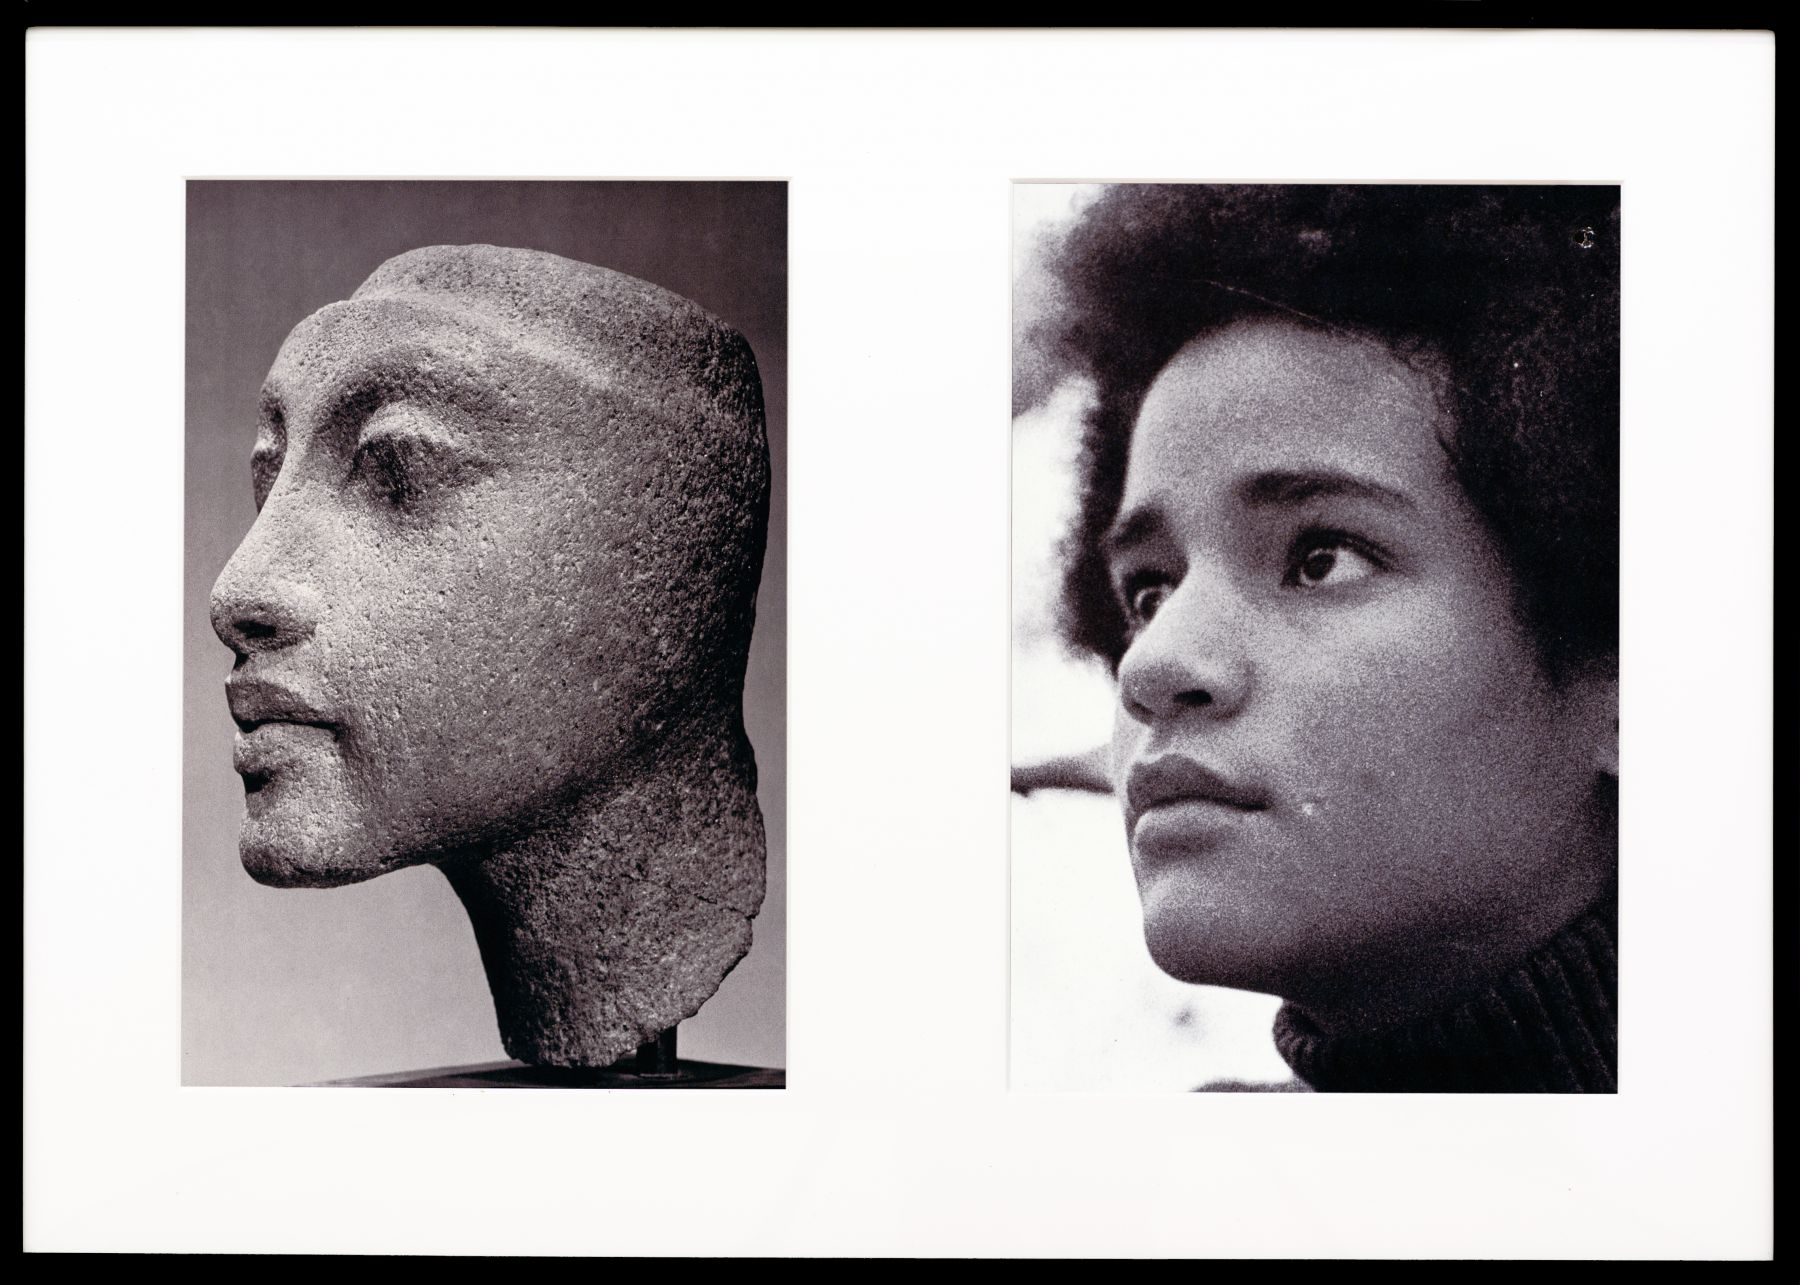 Miscegenated Family Album (Sisters III), L: Nefertiti's daughter, Maketaten; R: Devonia's daughter, Kimberley, 1980/1994, Cibachrome prints, 26h x 37w in, (66.04h x 93.98w cm)